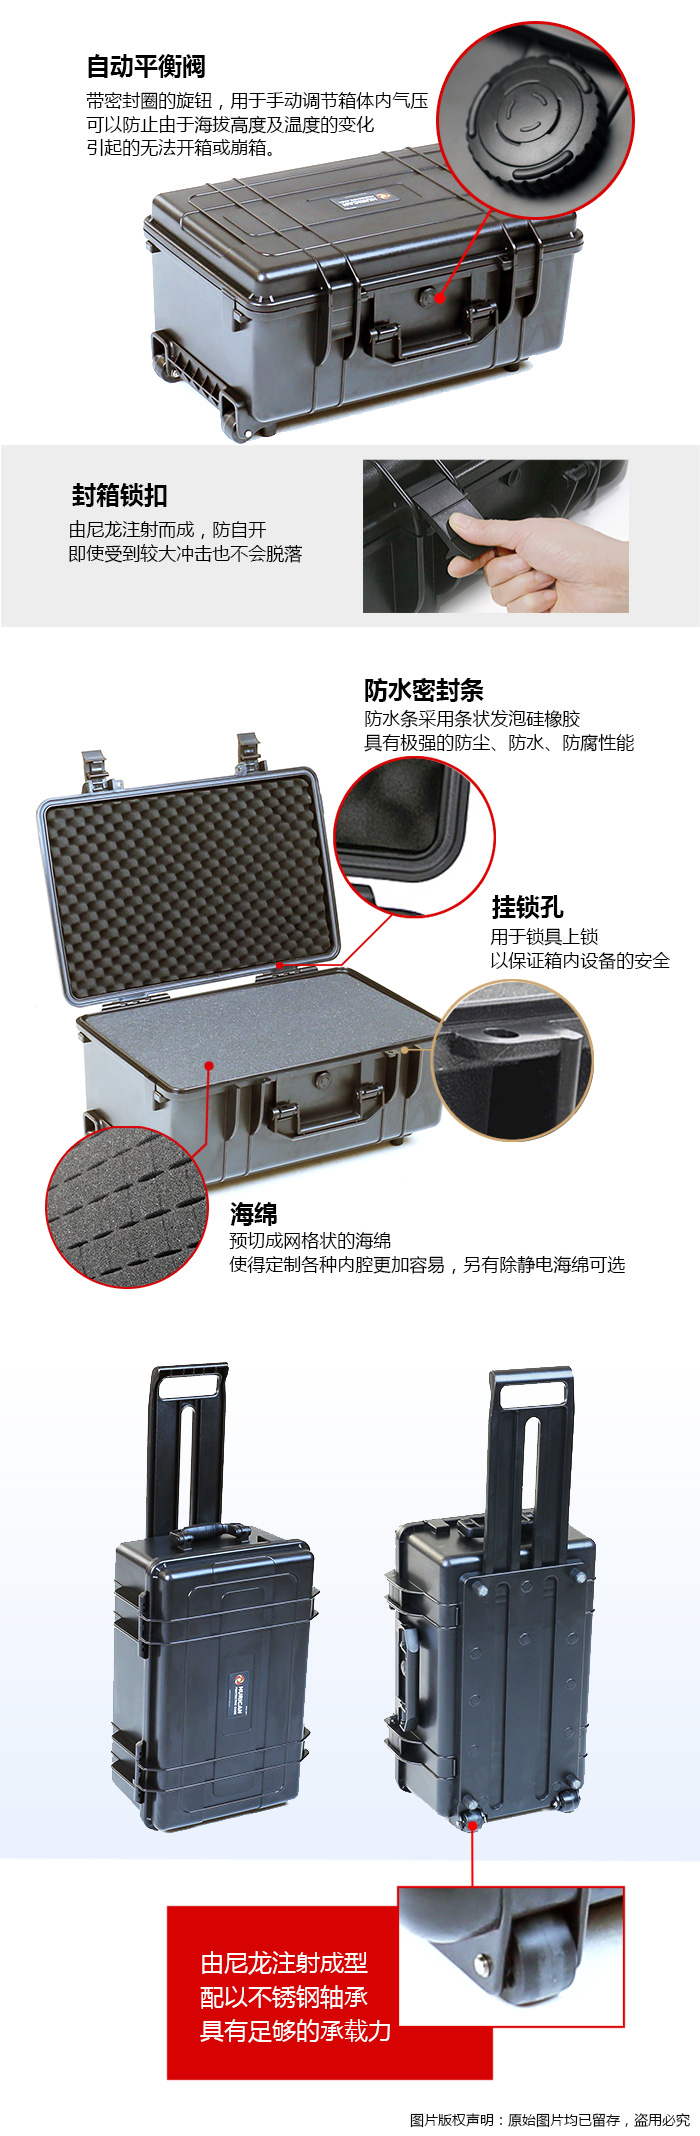 protective_cases_37-19-1